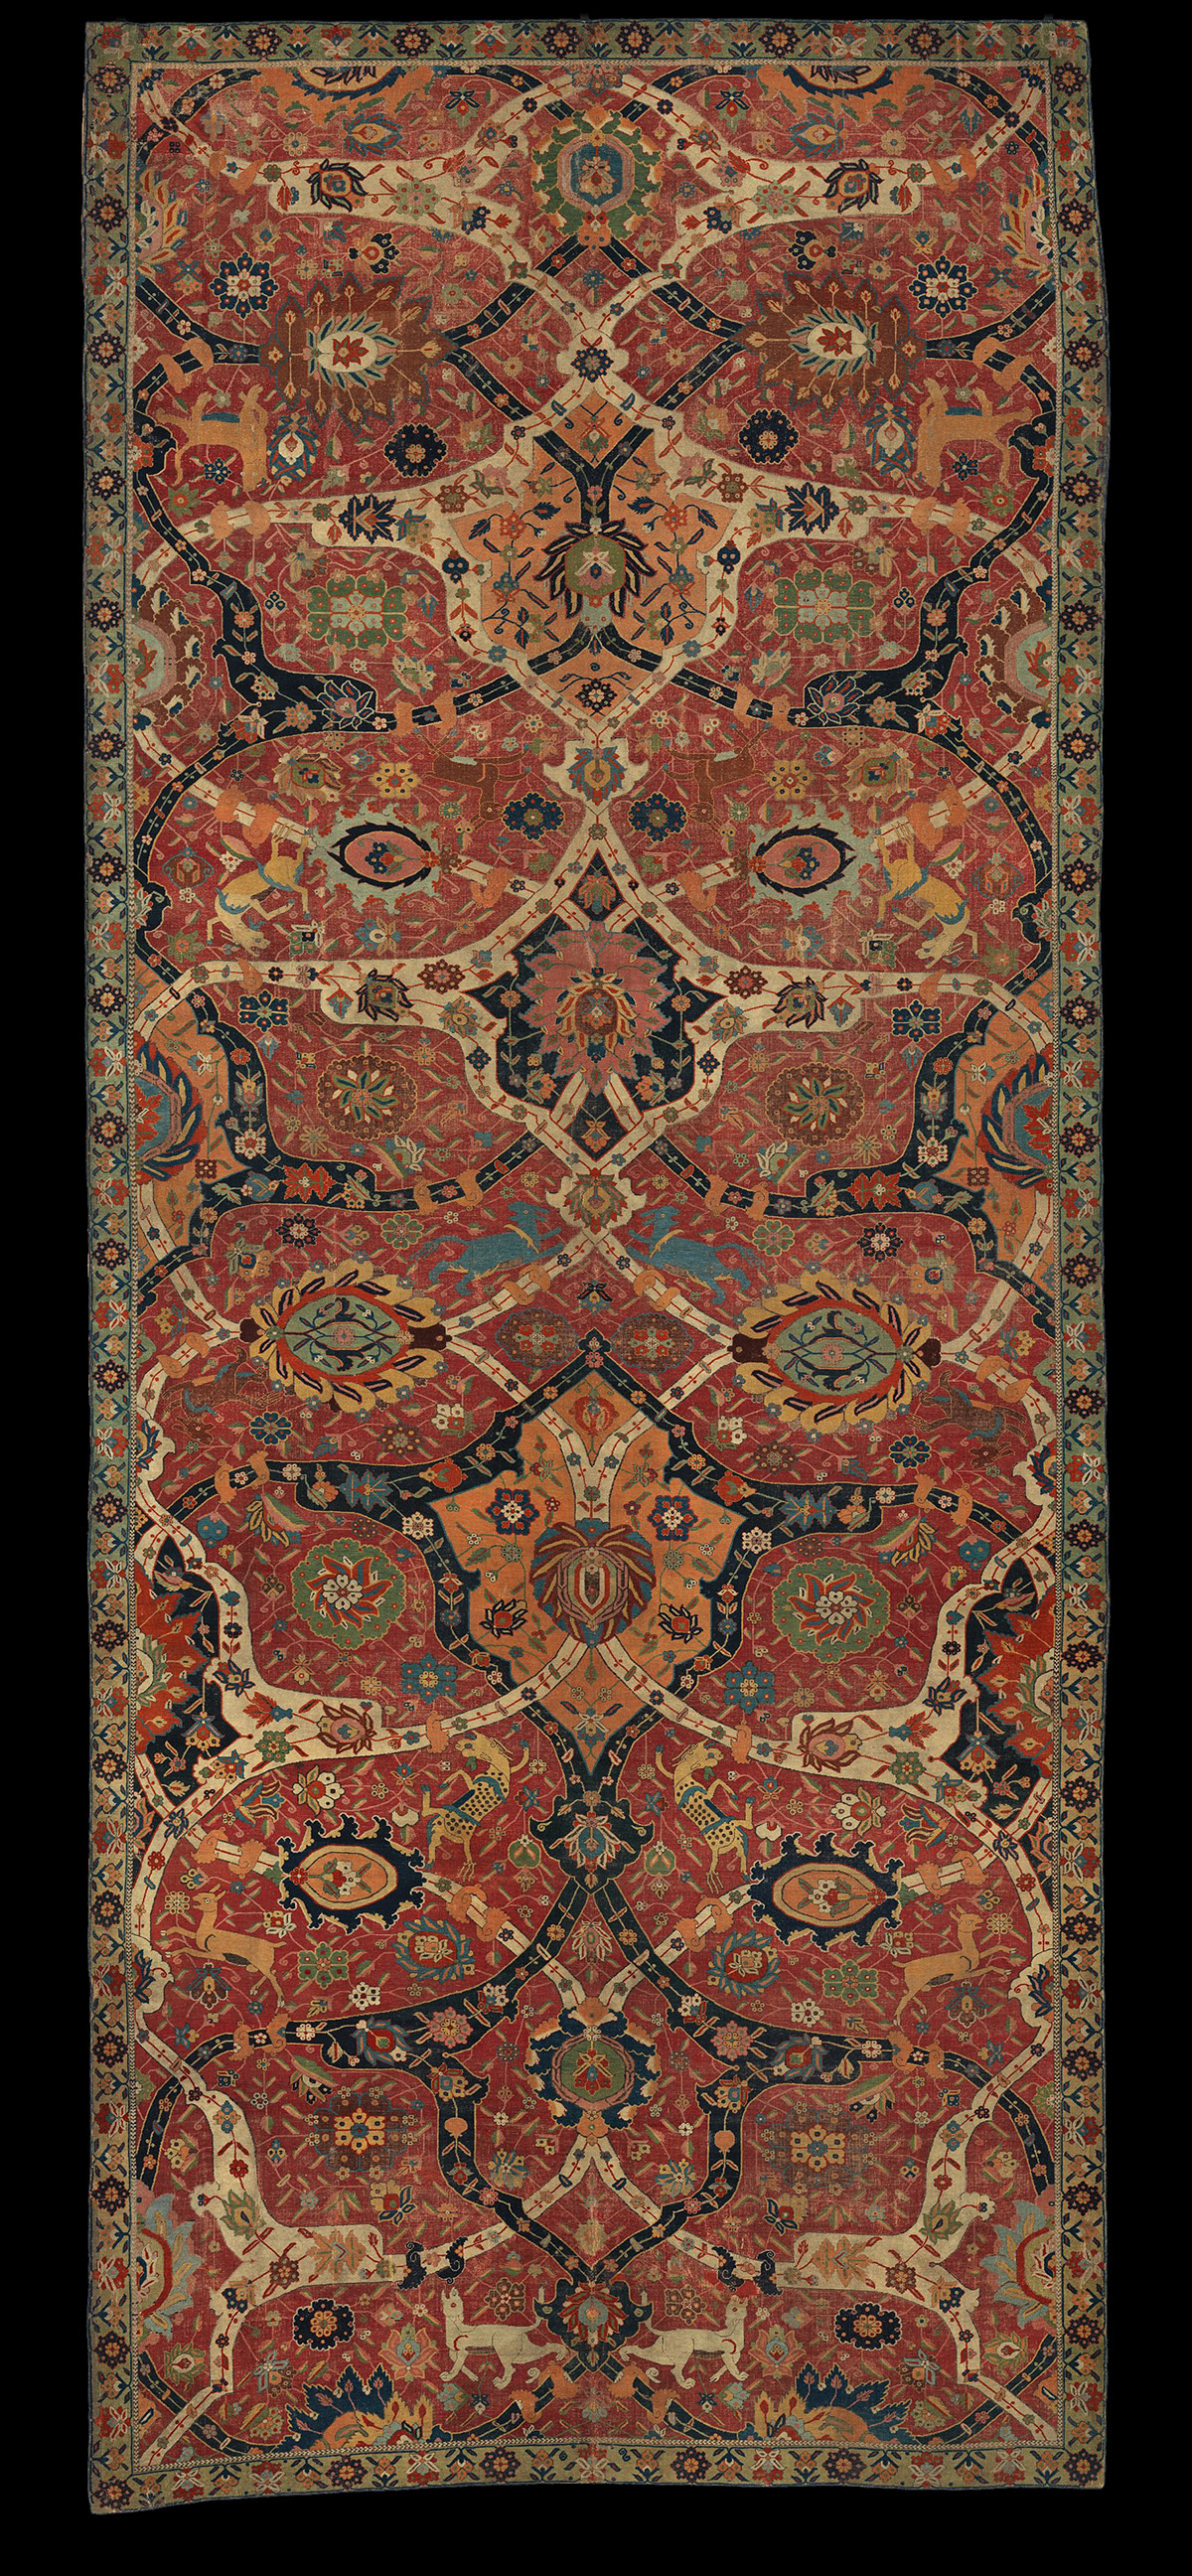 Oriental Rugs In The Metropolitan Museum Of Art New York 1973 No 47 Pp 86 113 Ill Fig 119 B W